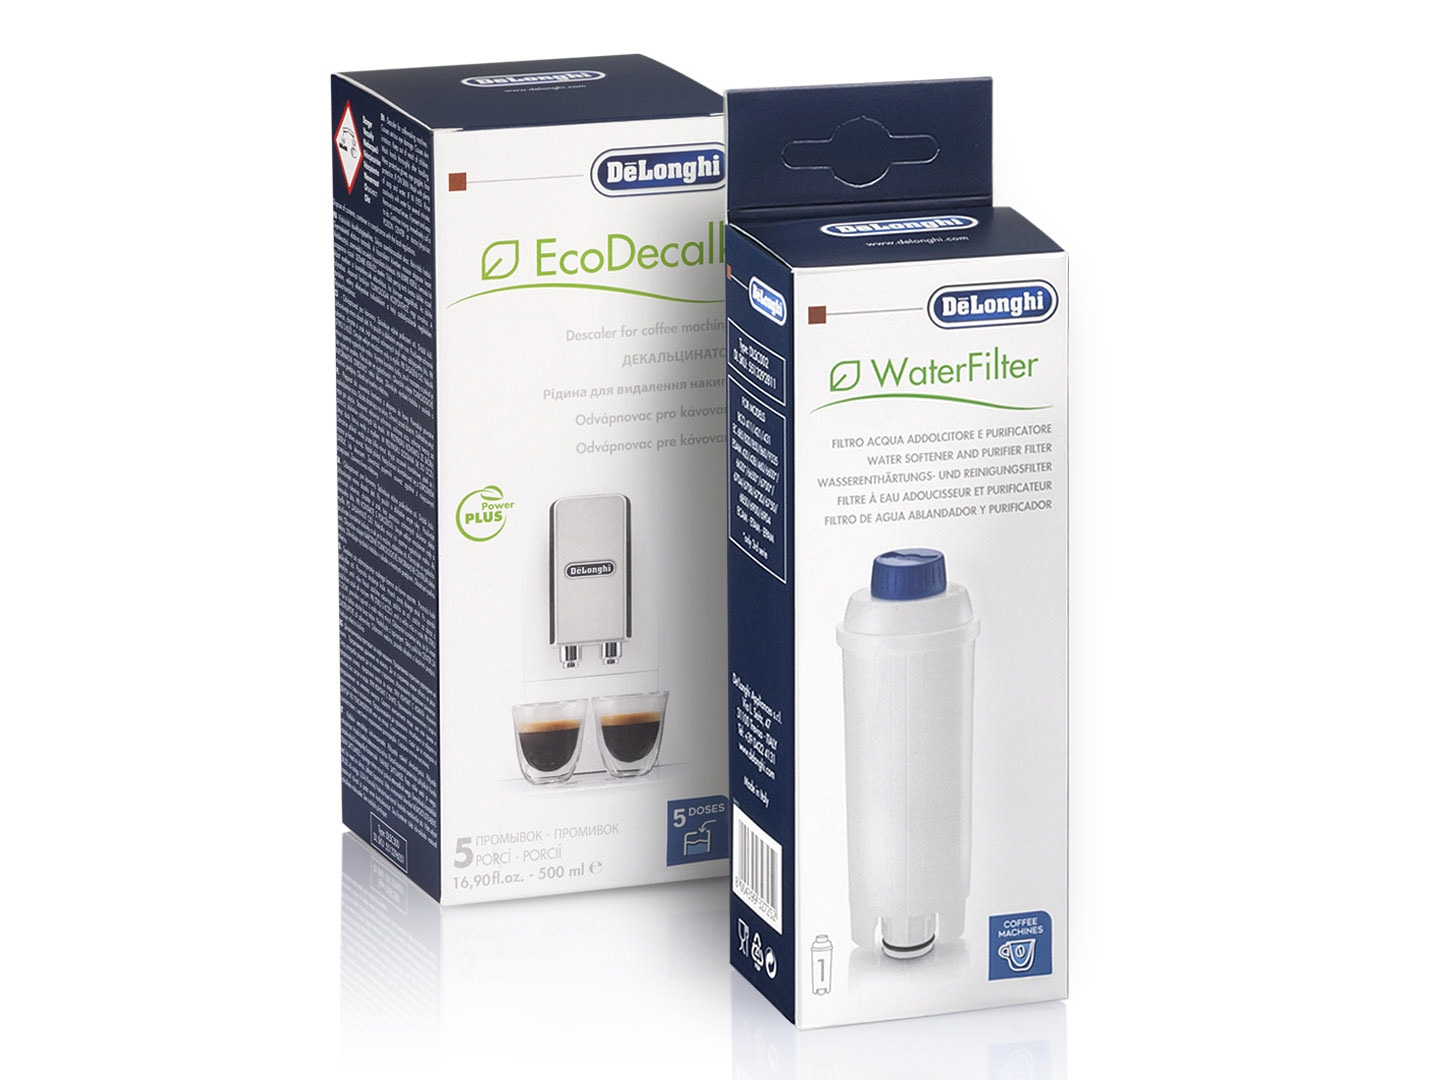 Water filter and EcoDecalk